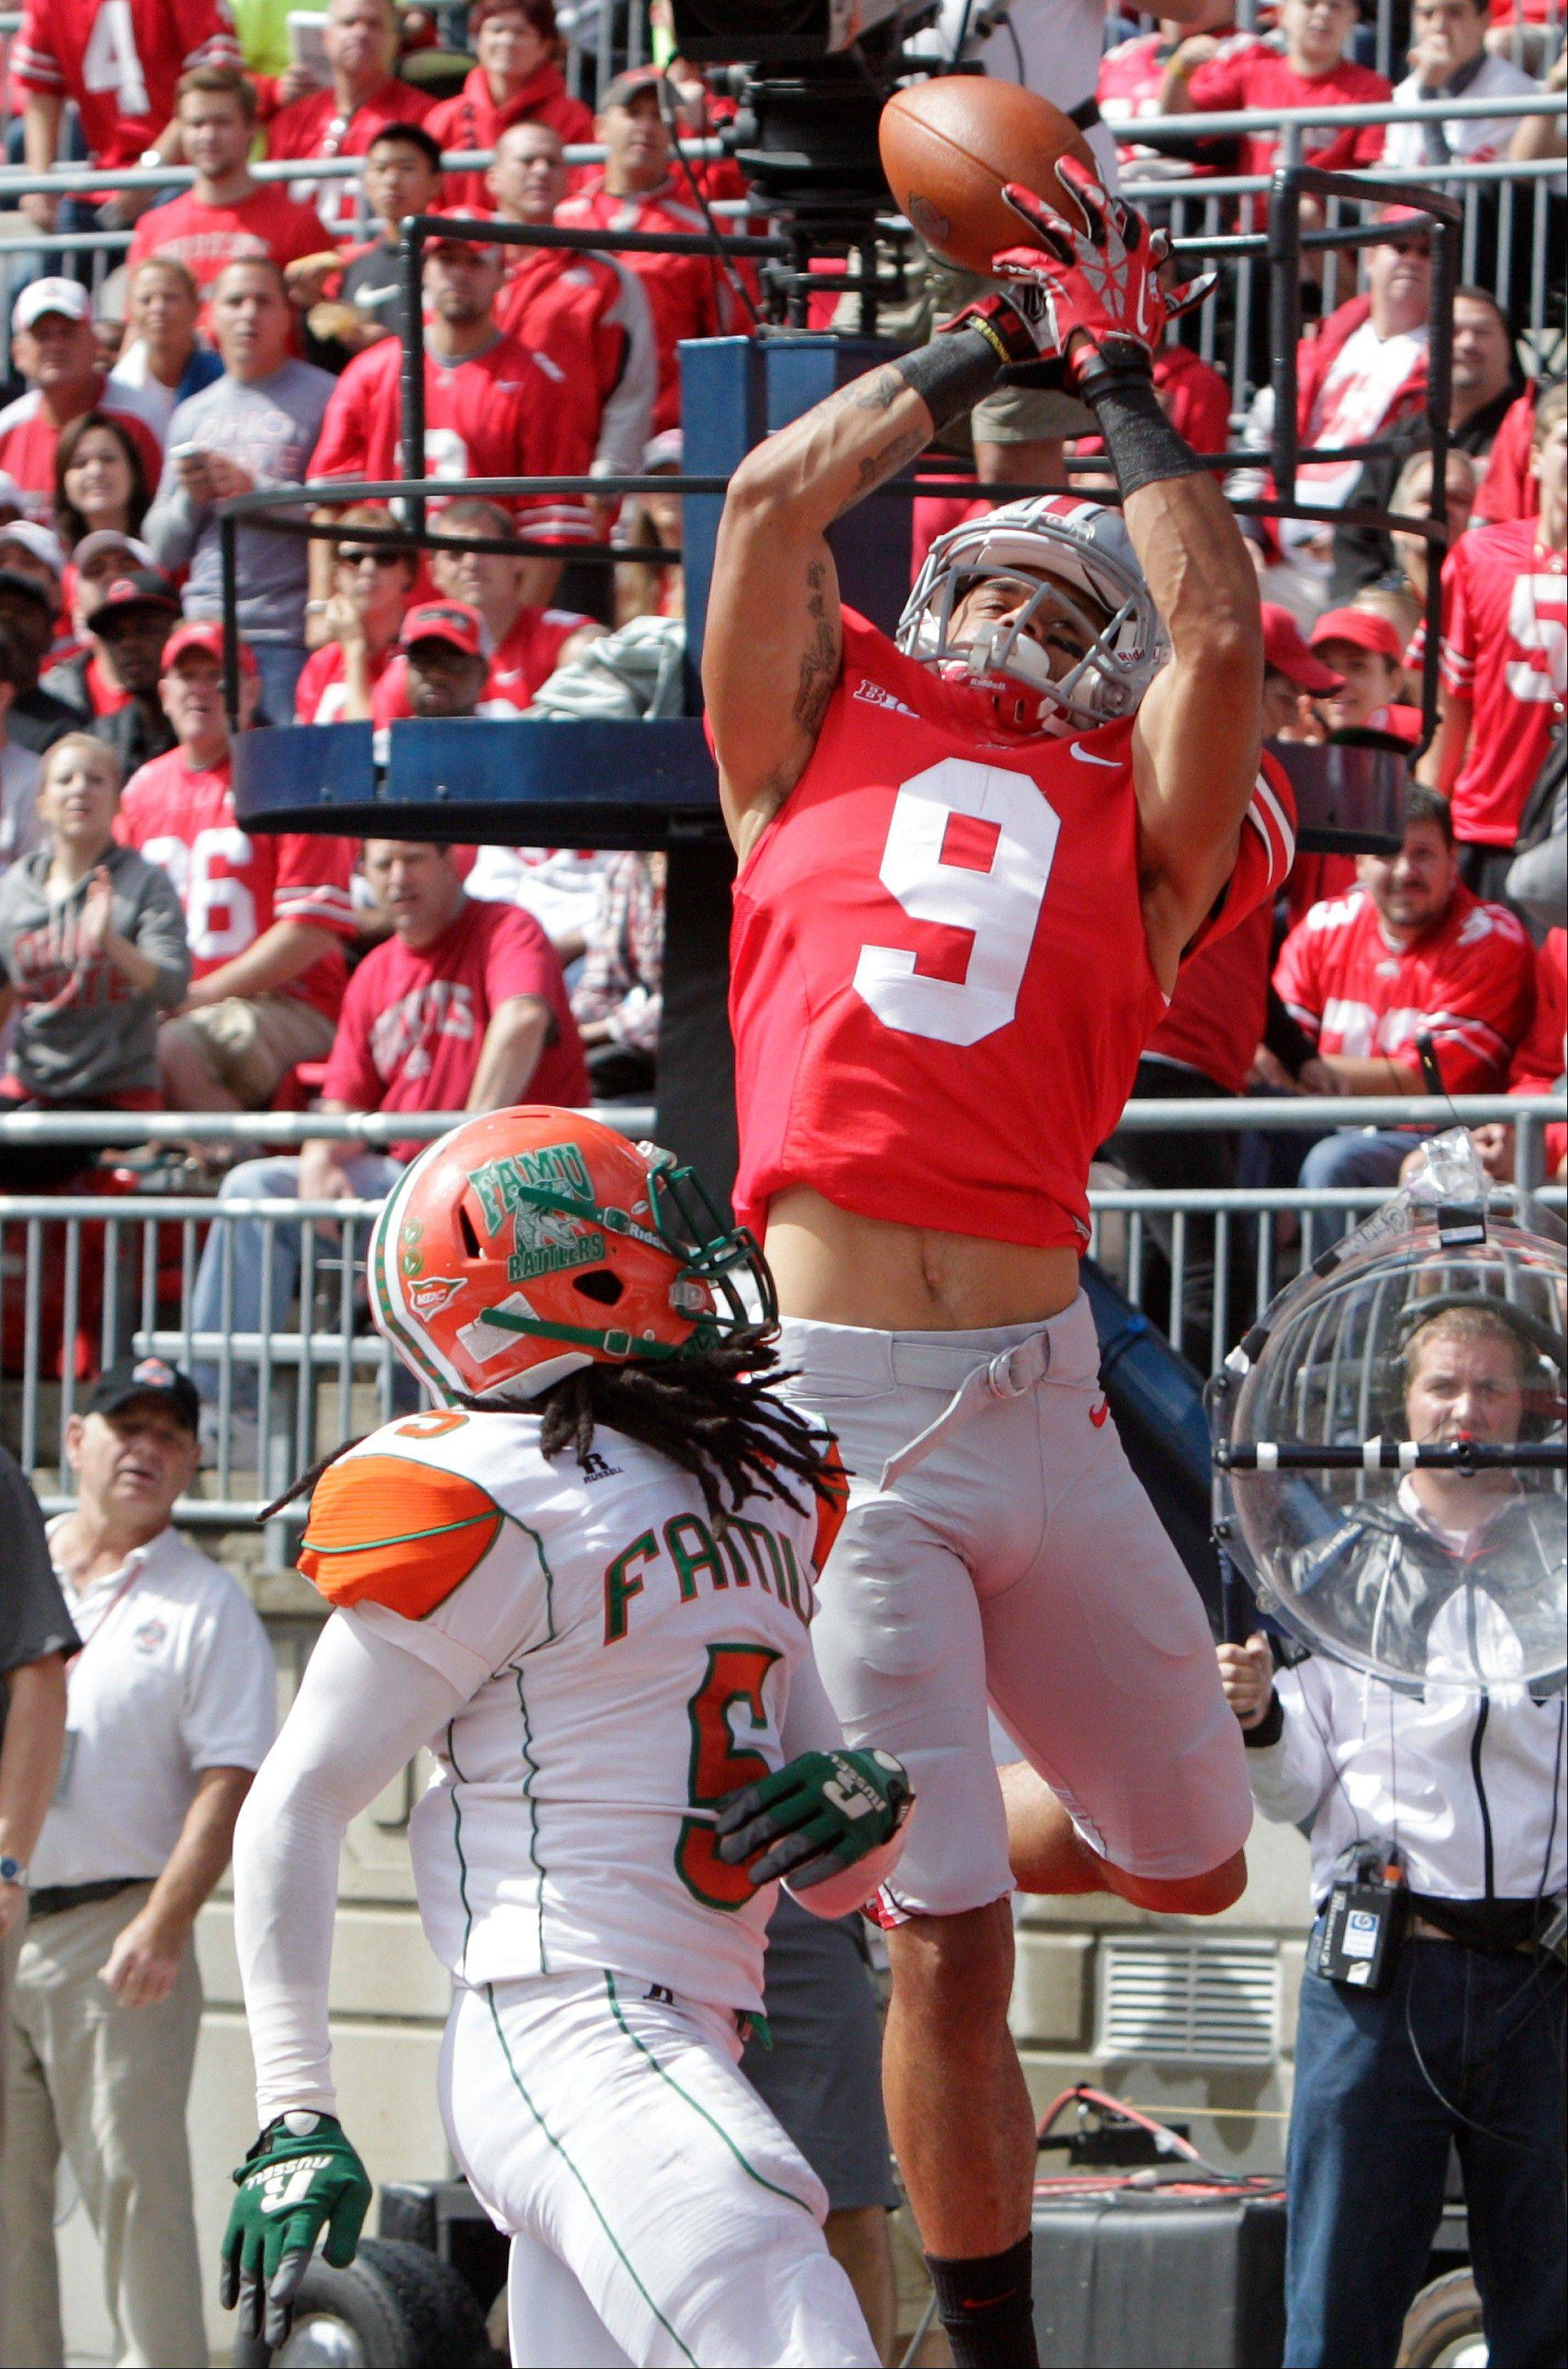 Ohio State rolls over FAMU 76-0